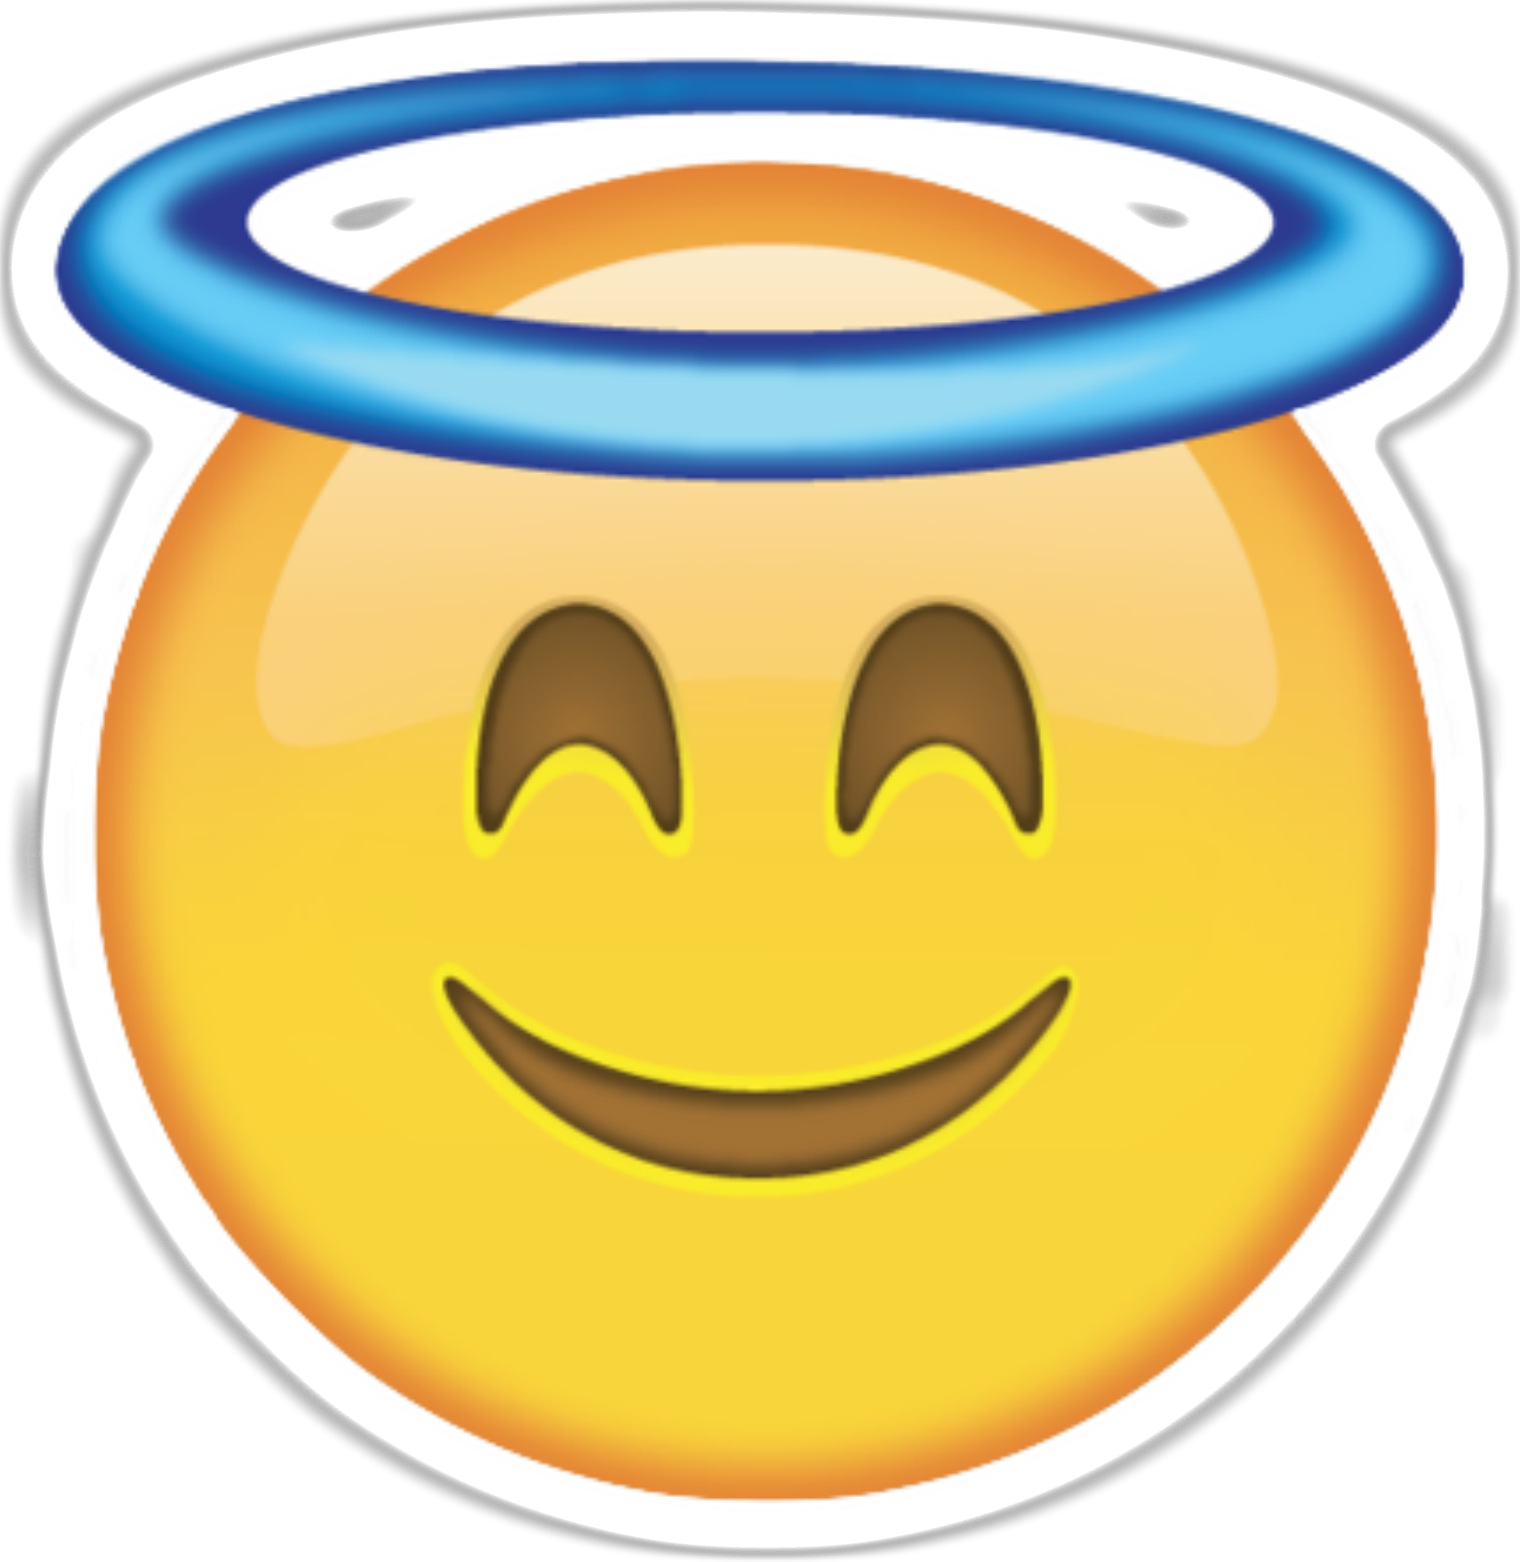 Emoji clipart angel. Year image result for